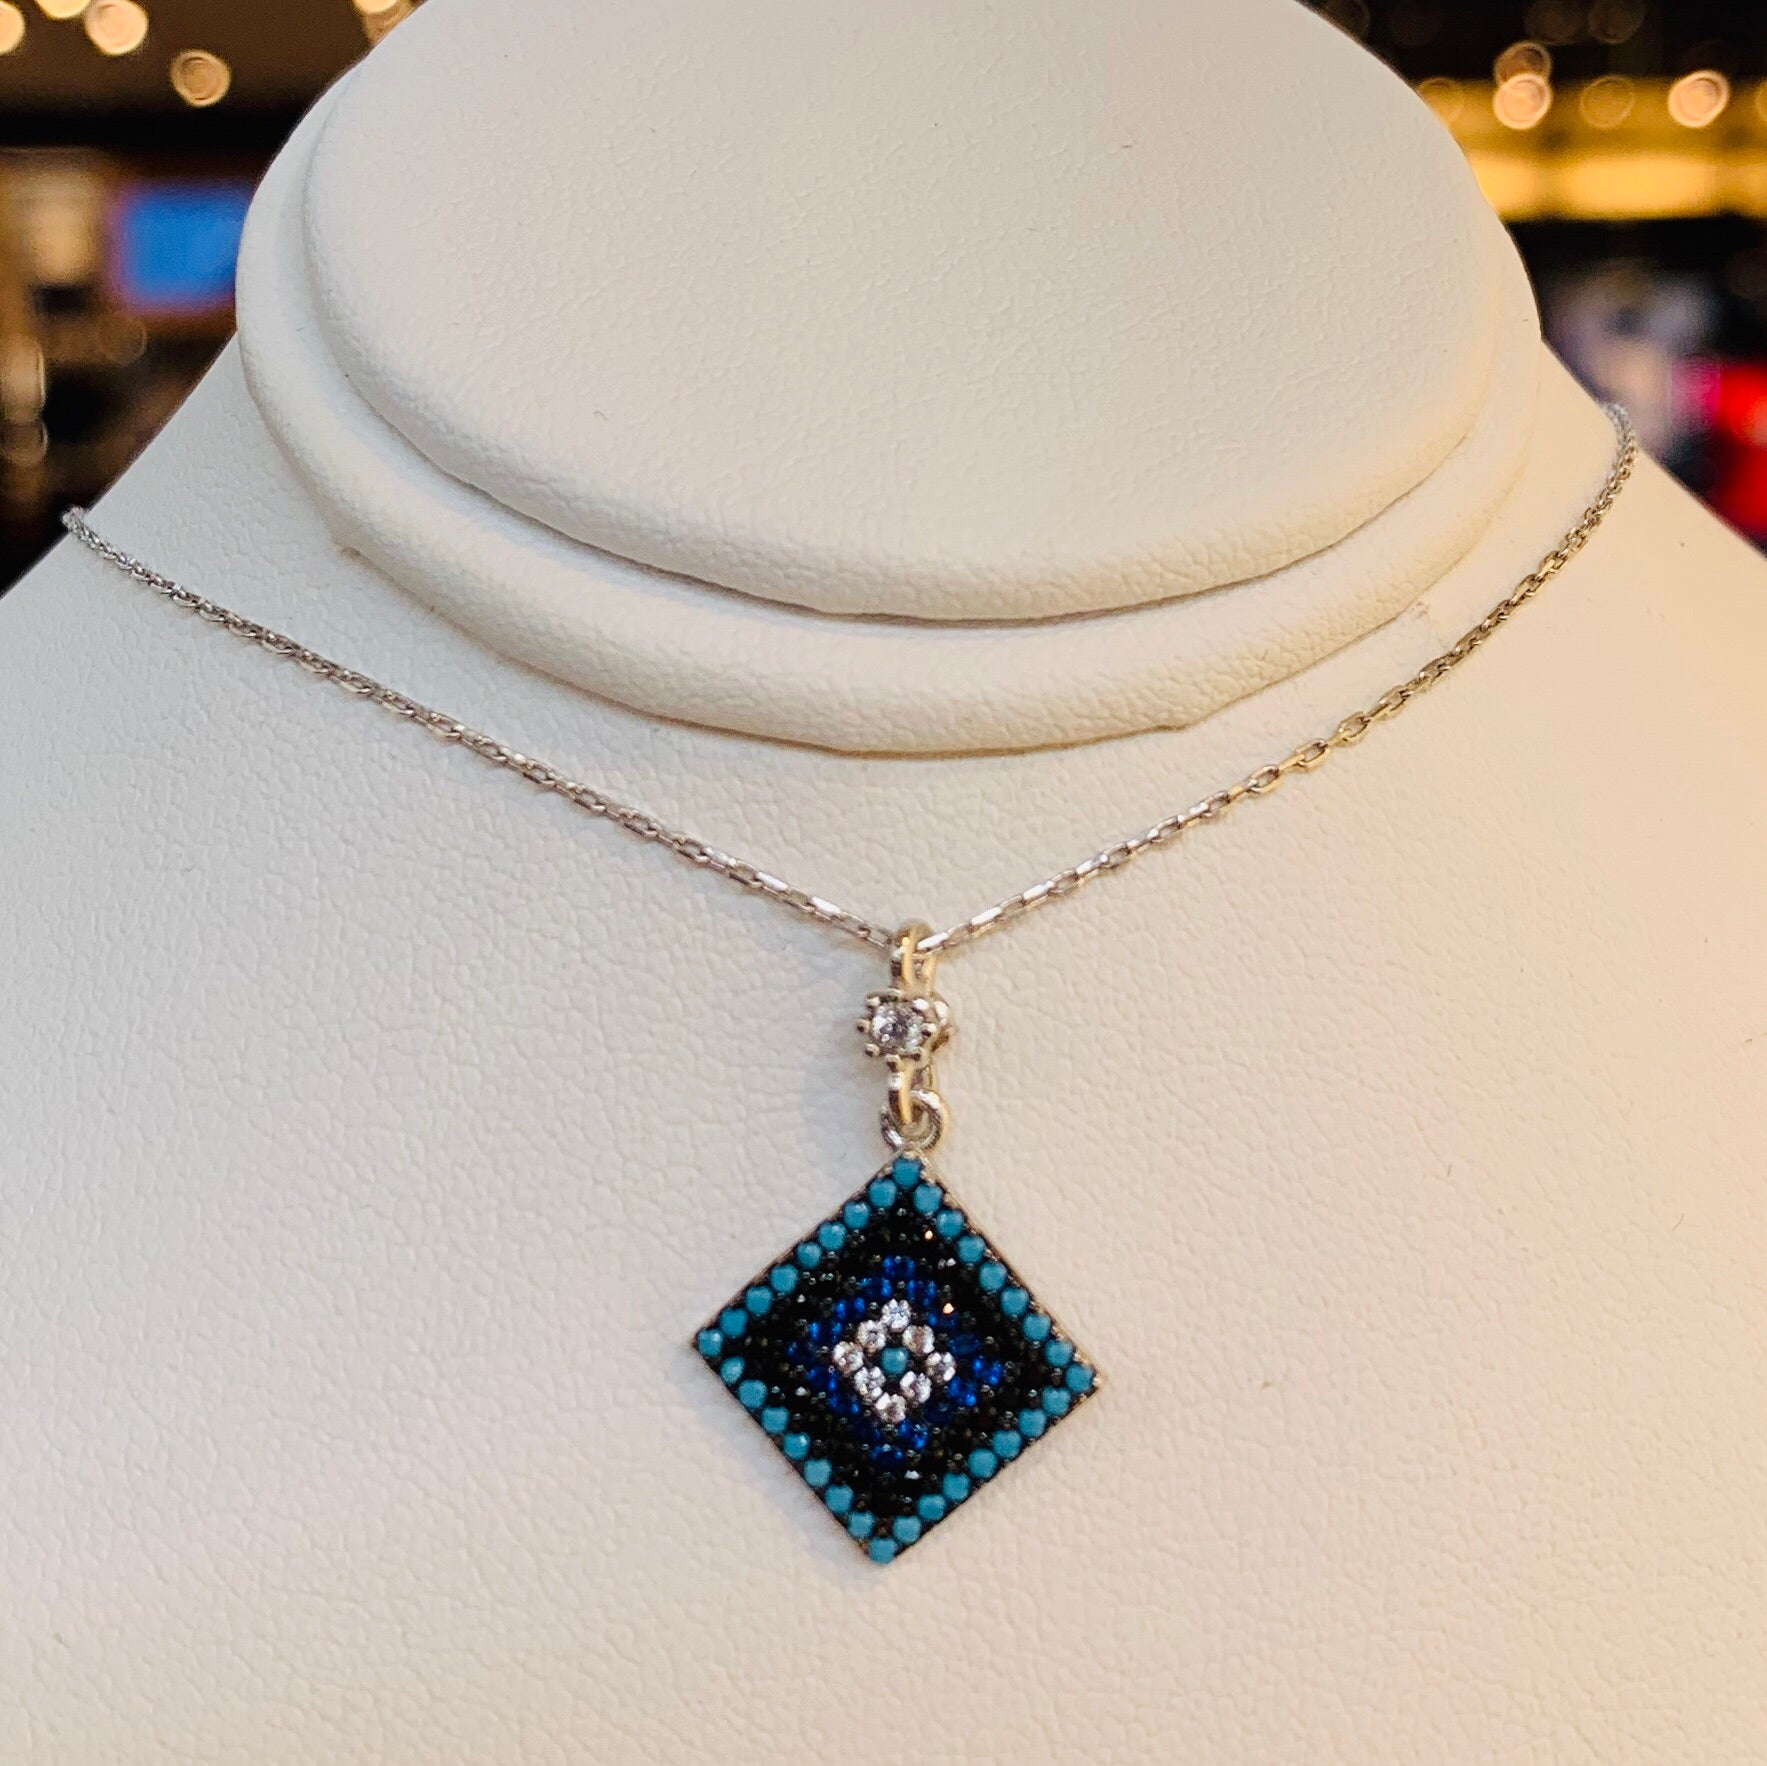 Blue Square Eye necklace